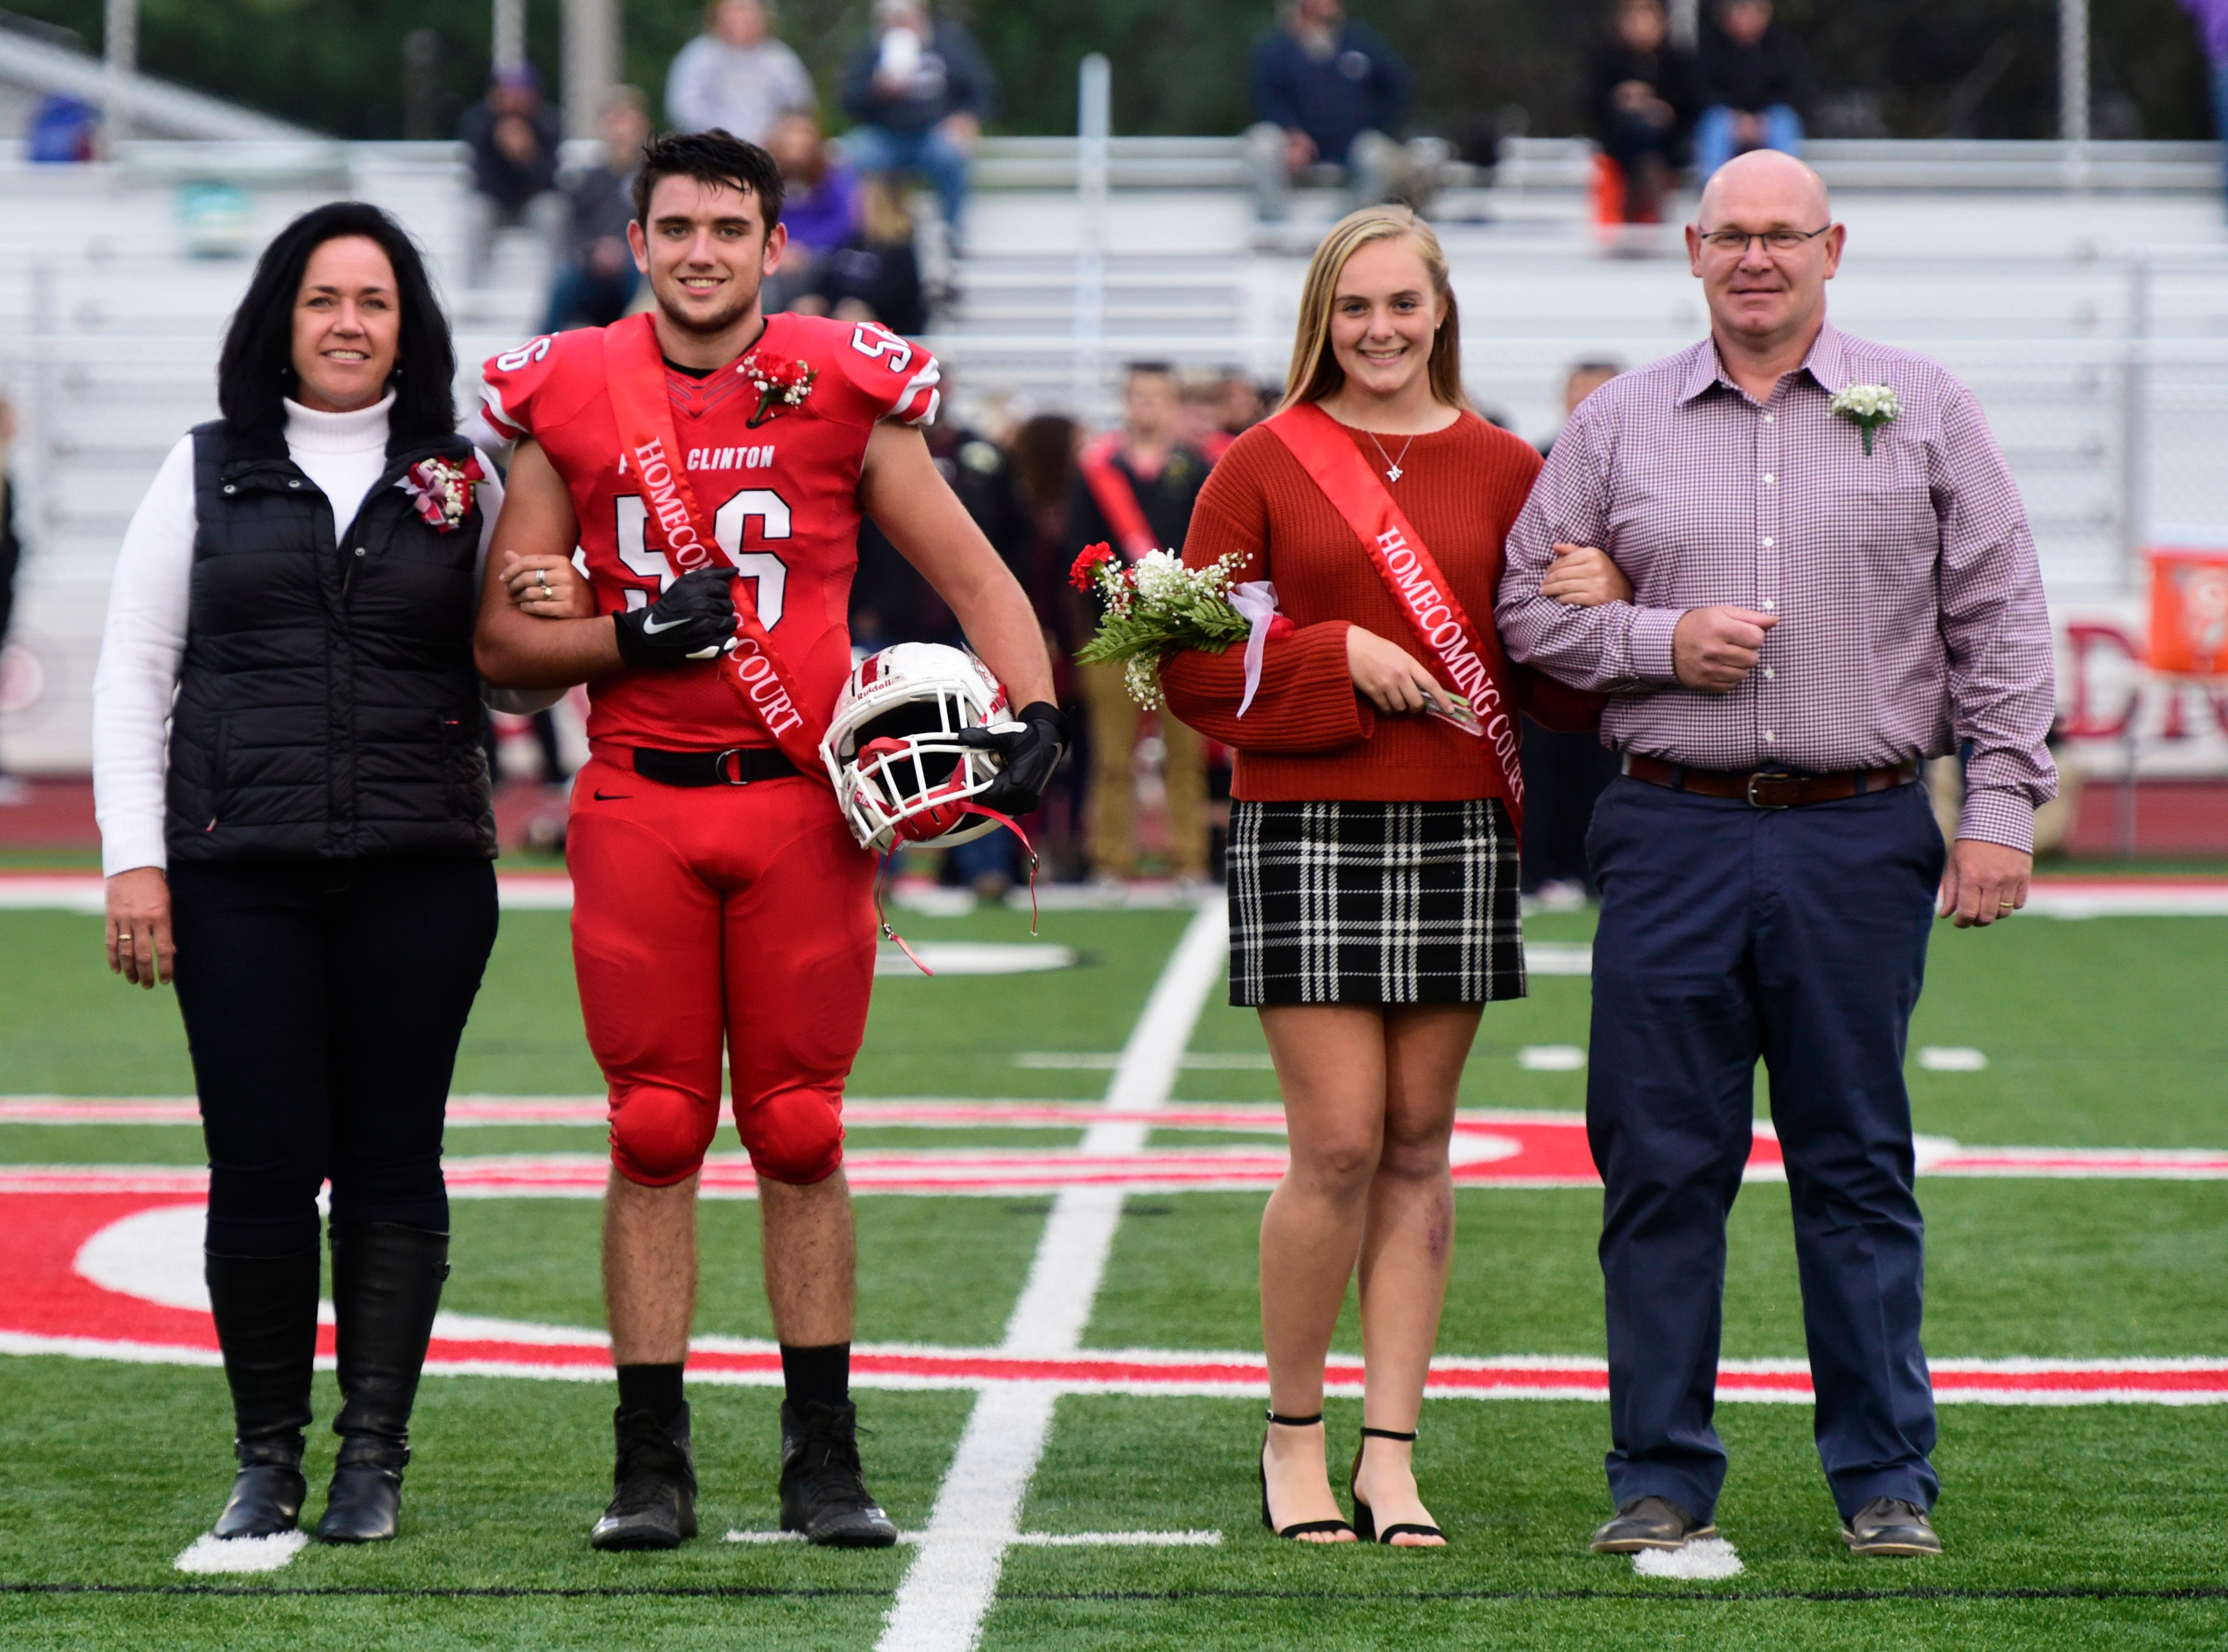 Port Clinton High School 2018 junior homecoming attendants Caden Chapman, left, and Marie Gluth.